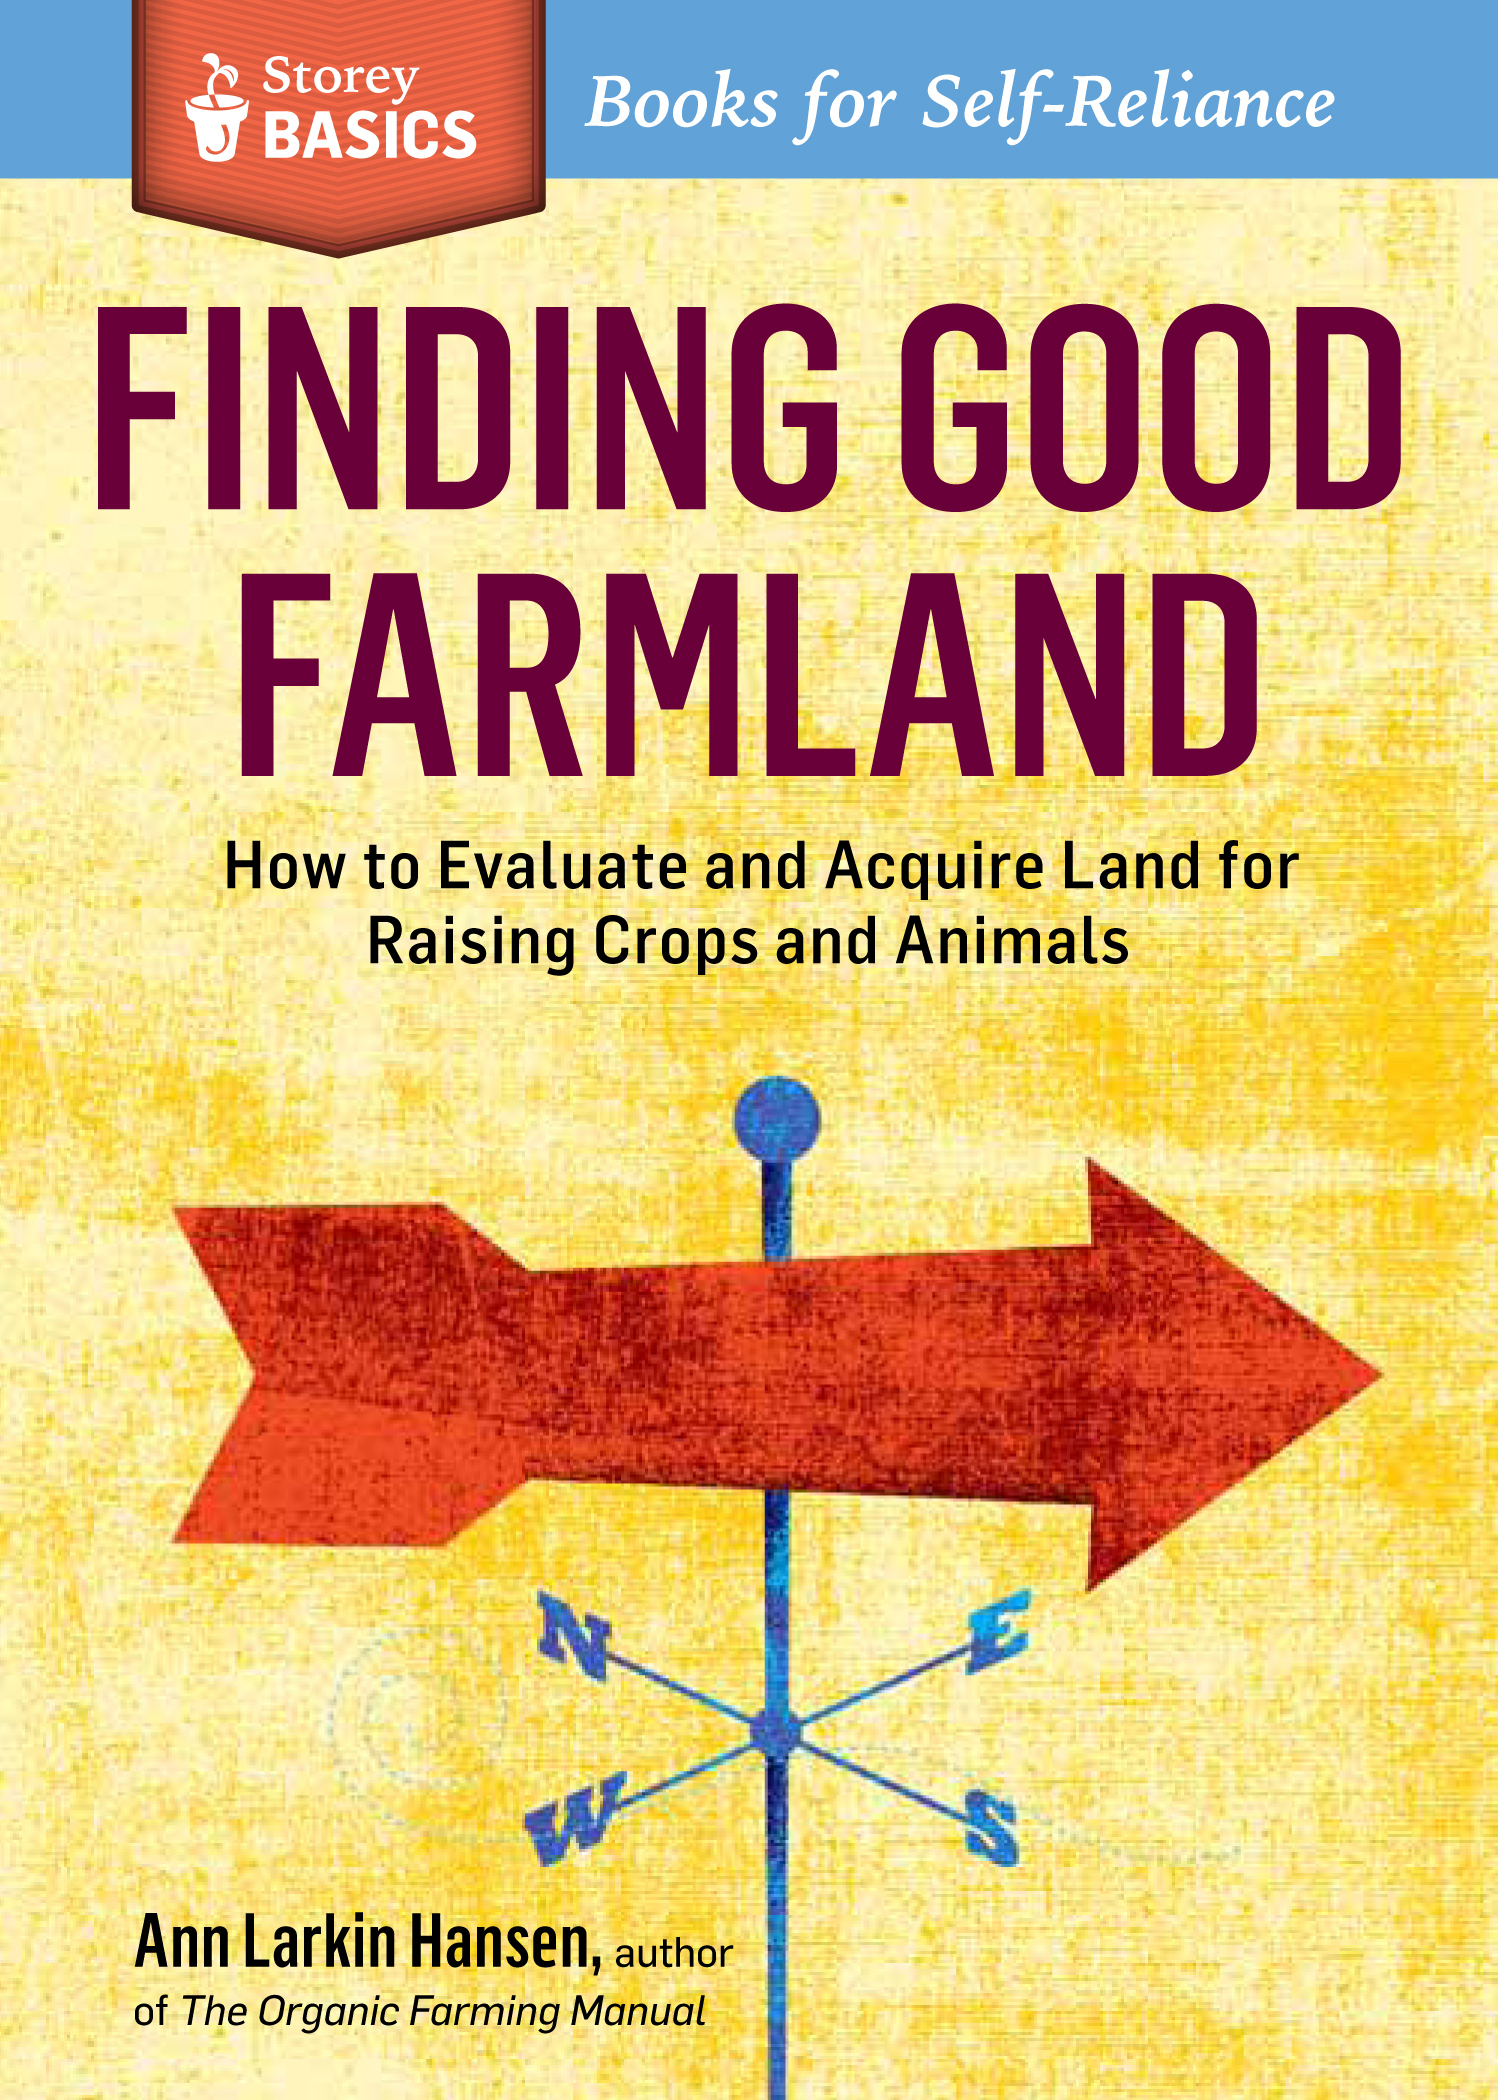 Finding Good Farmland How to Evaluate and Acquire Land for Raising Crops and Animals. A Storey BASICS® Title - Ann Larkin Hansen